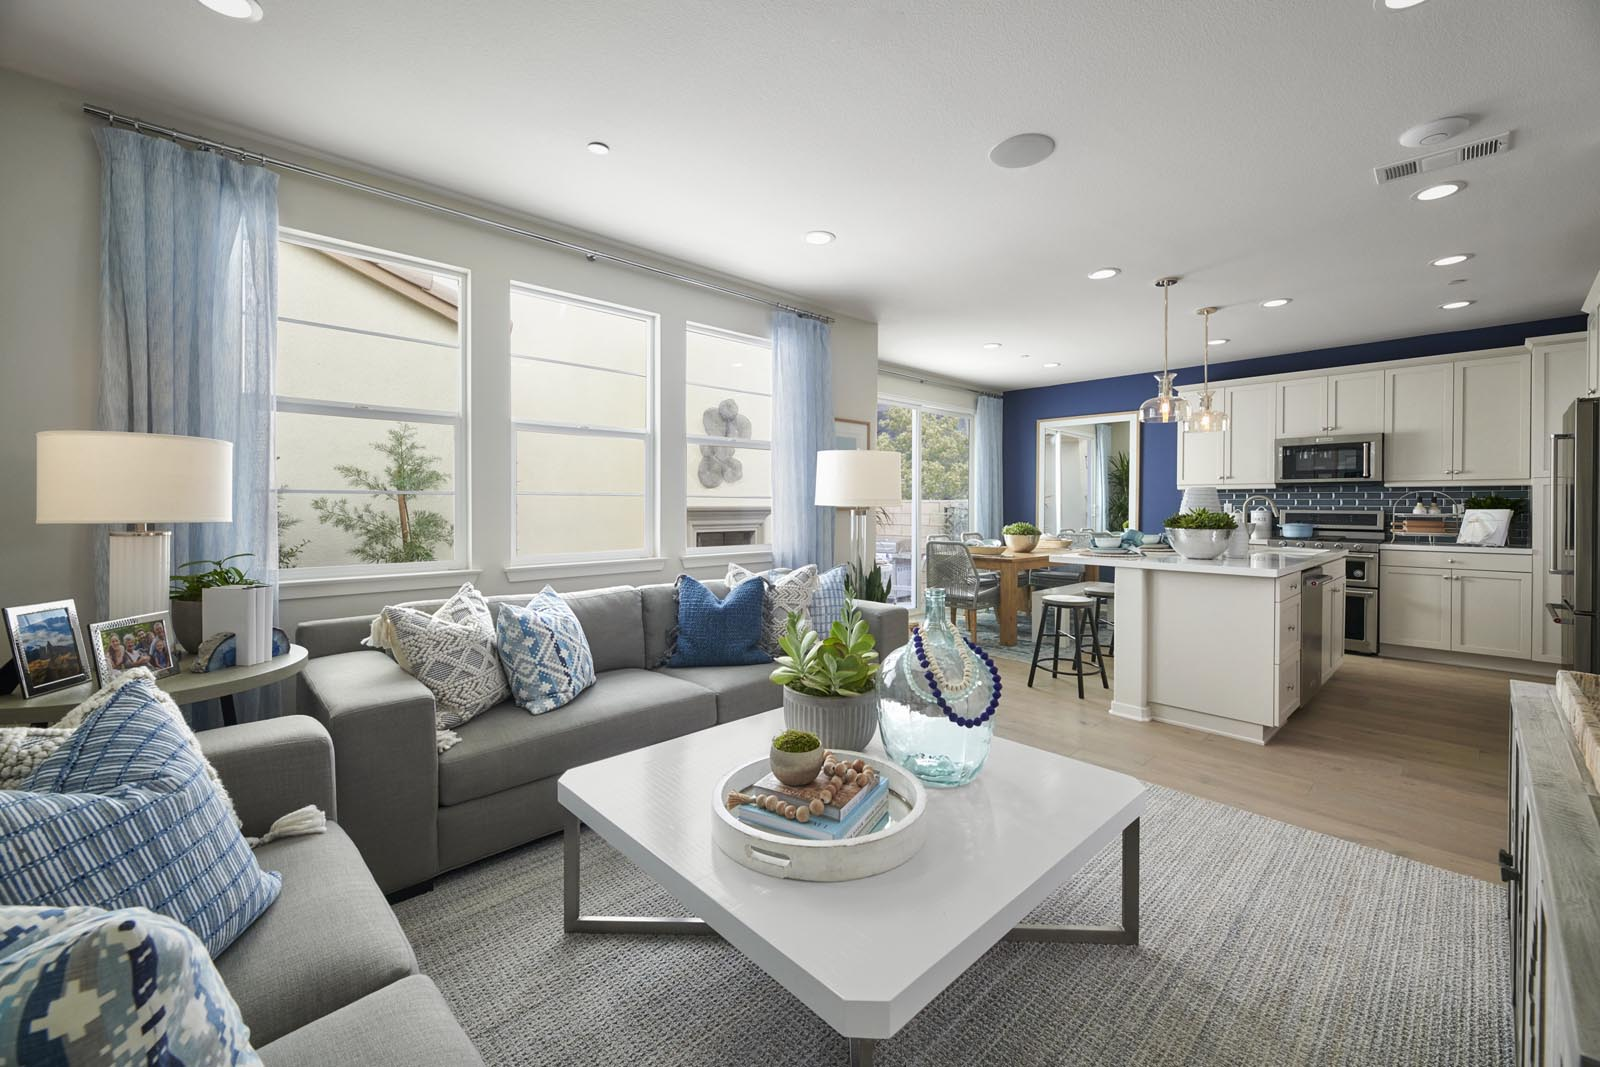 Great Room to Kitchen   Residence 3   Lumin   New Homes in Rancho Cucamonga, CA   Van Daele Homes